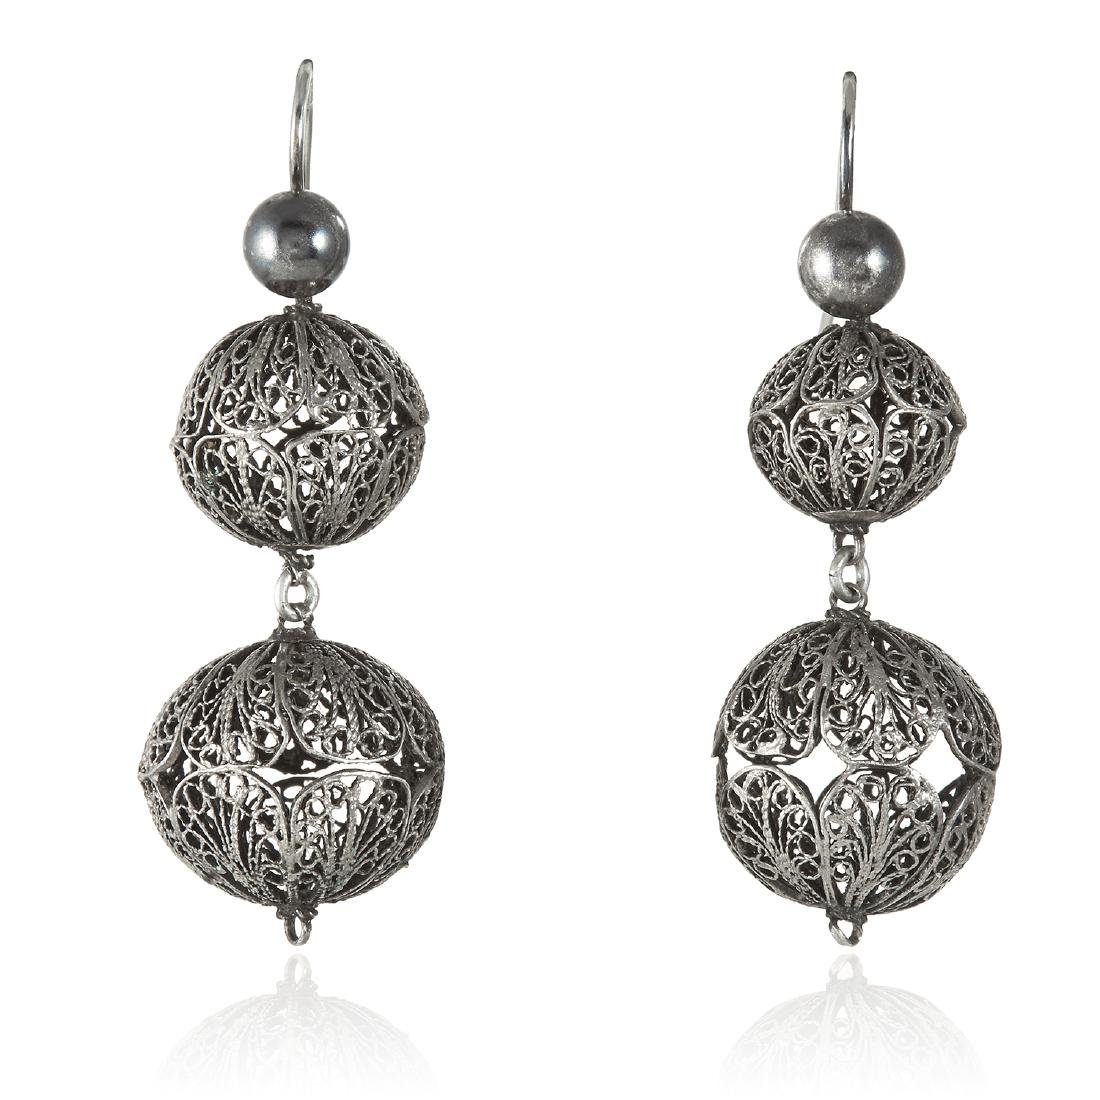 A PAIR OF FILIGREE EARRINGS in silver, designed as a